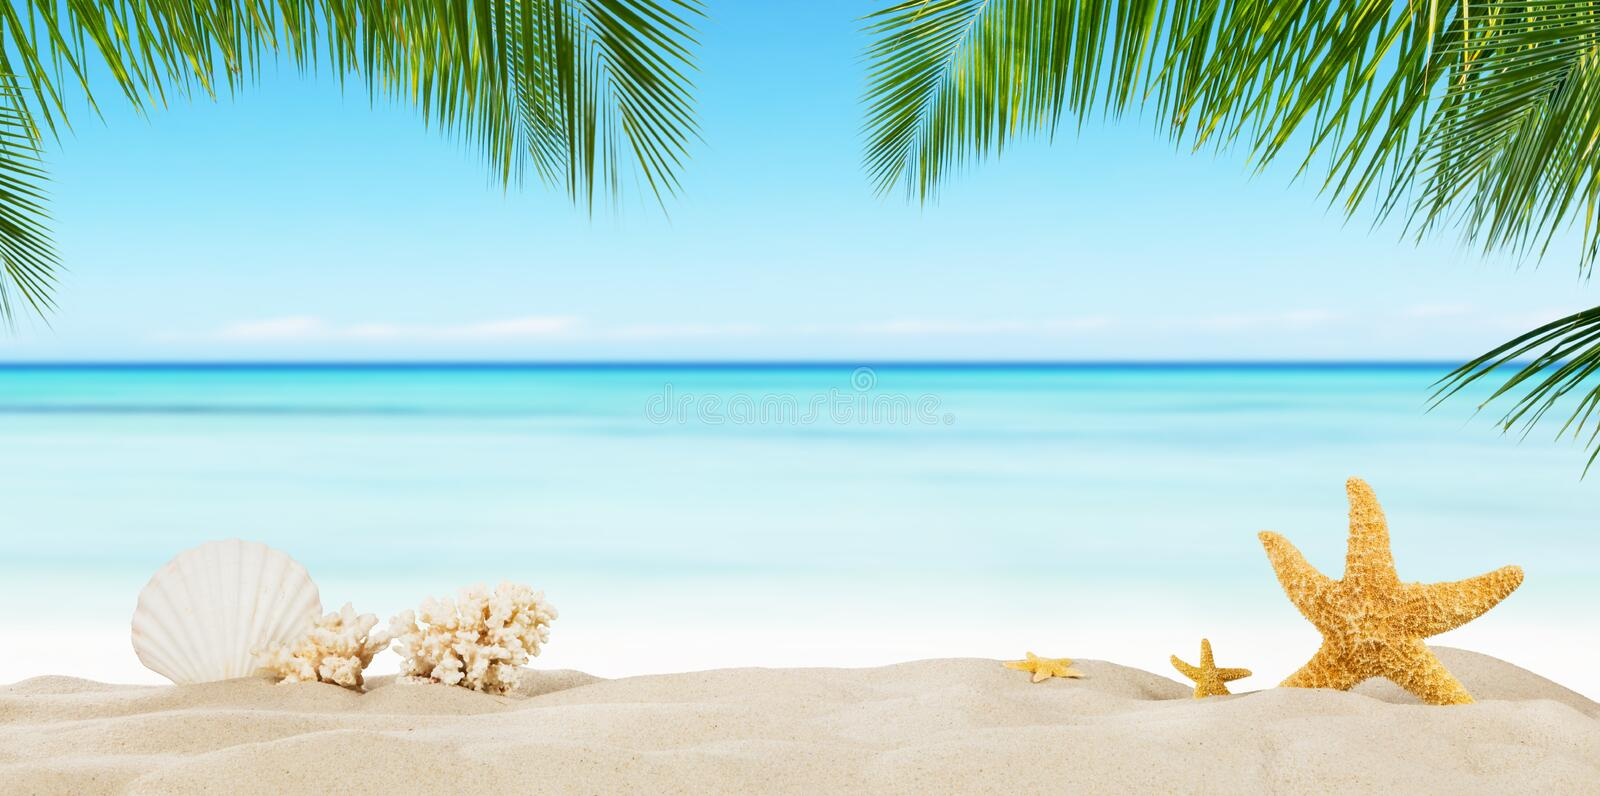 Tropical beach with sea star on sand, summer holiday background. stock image